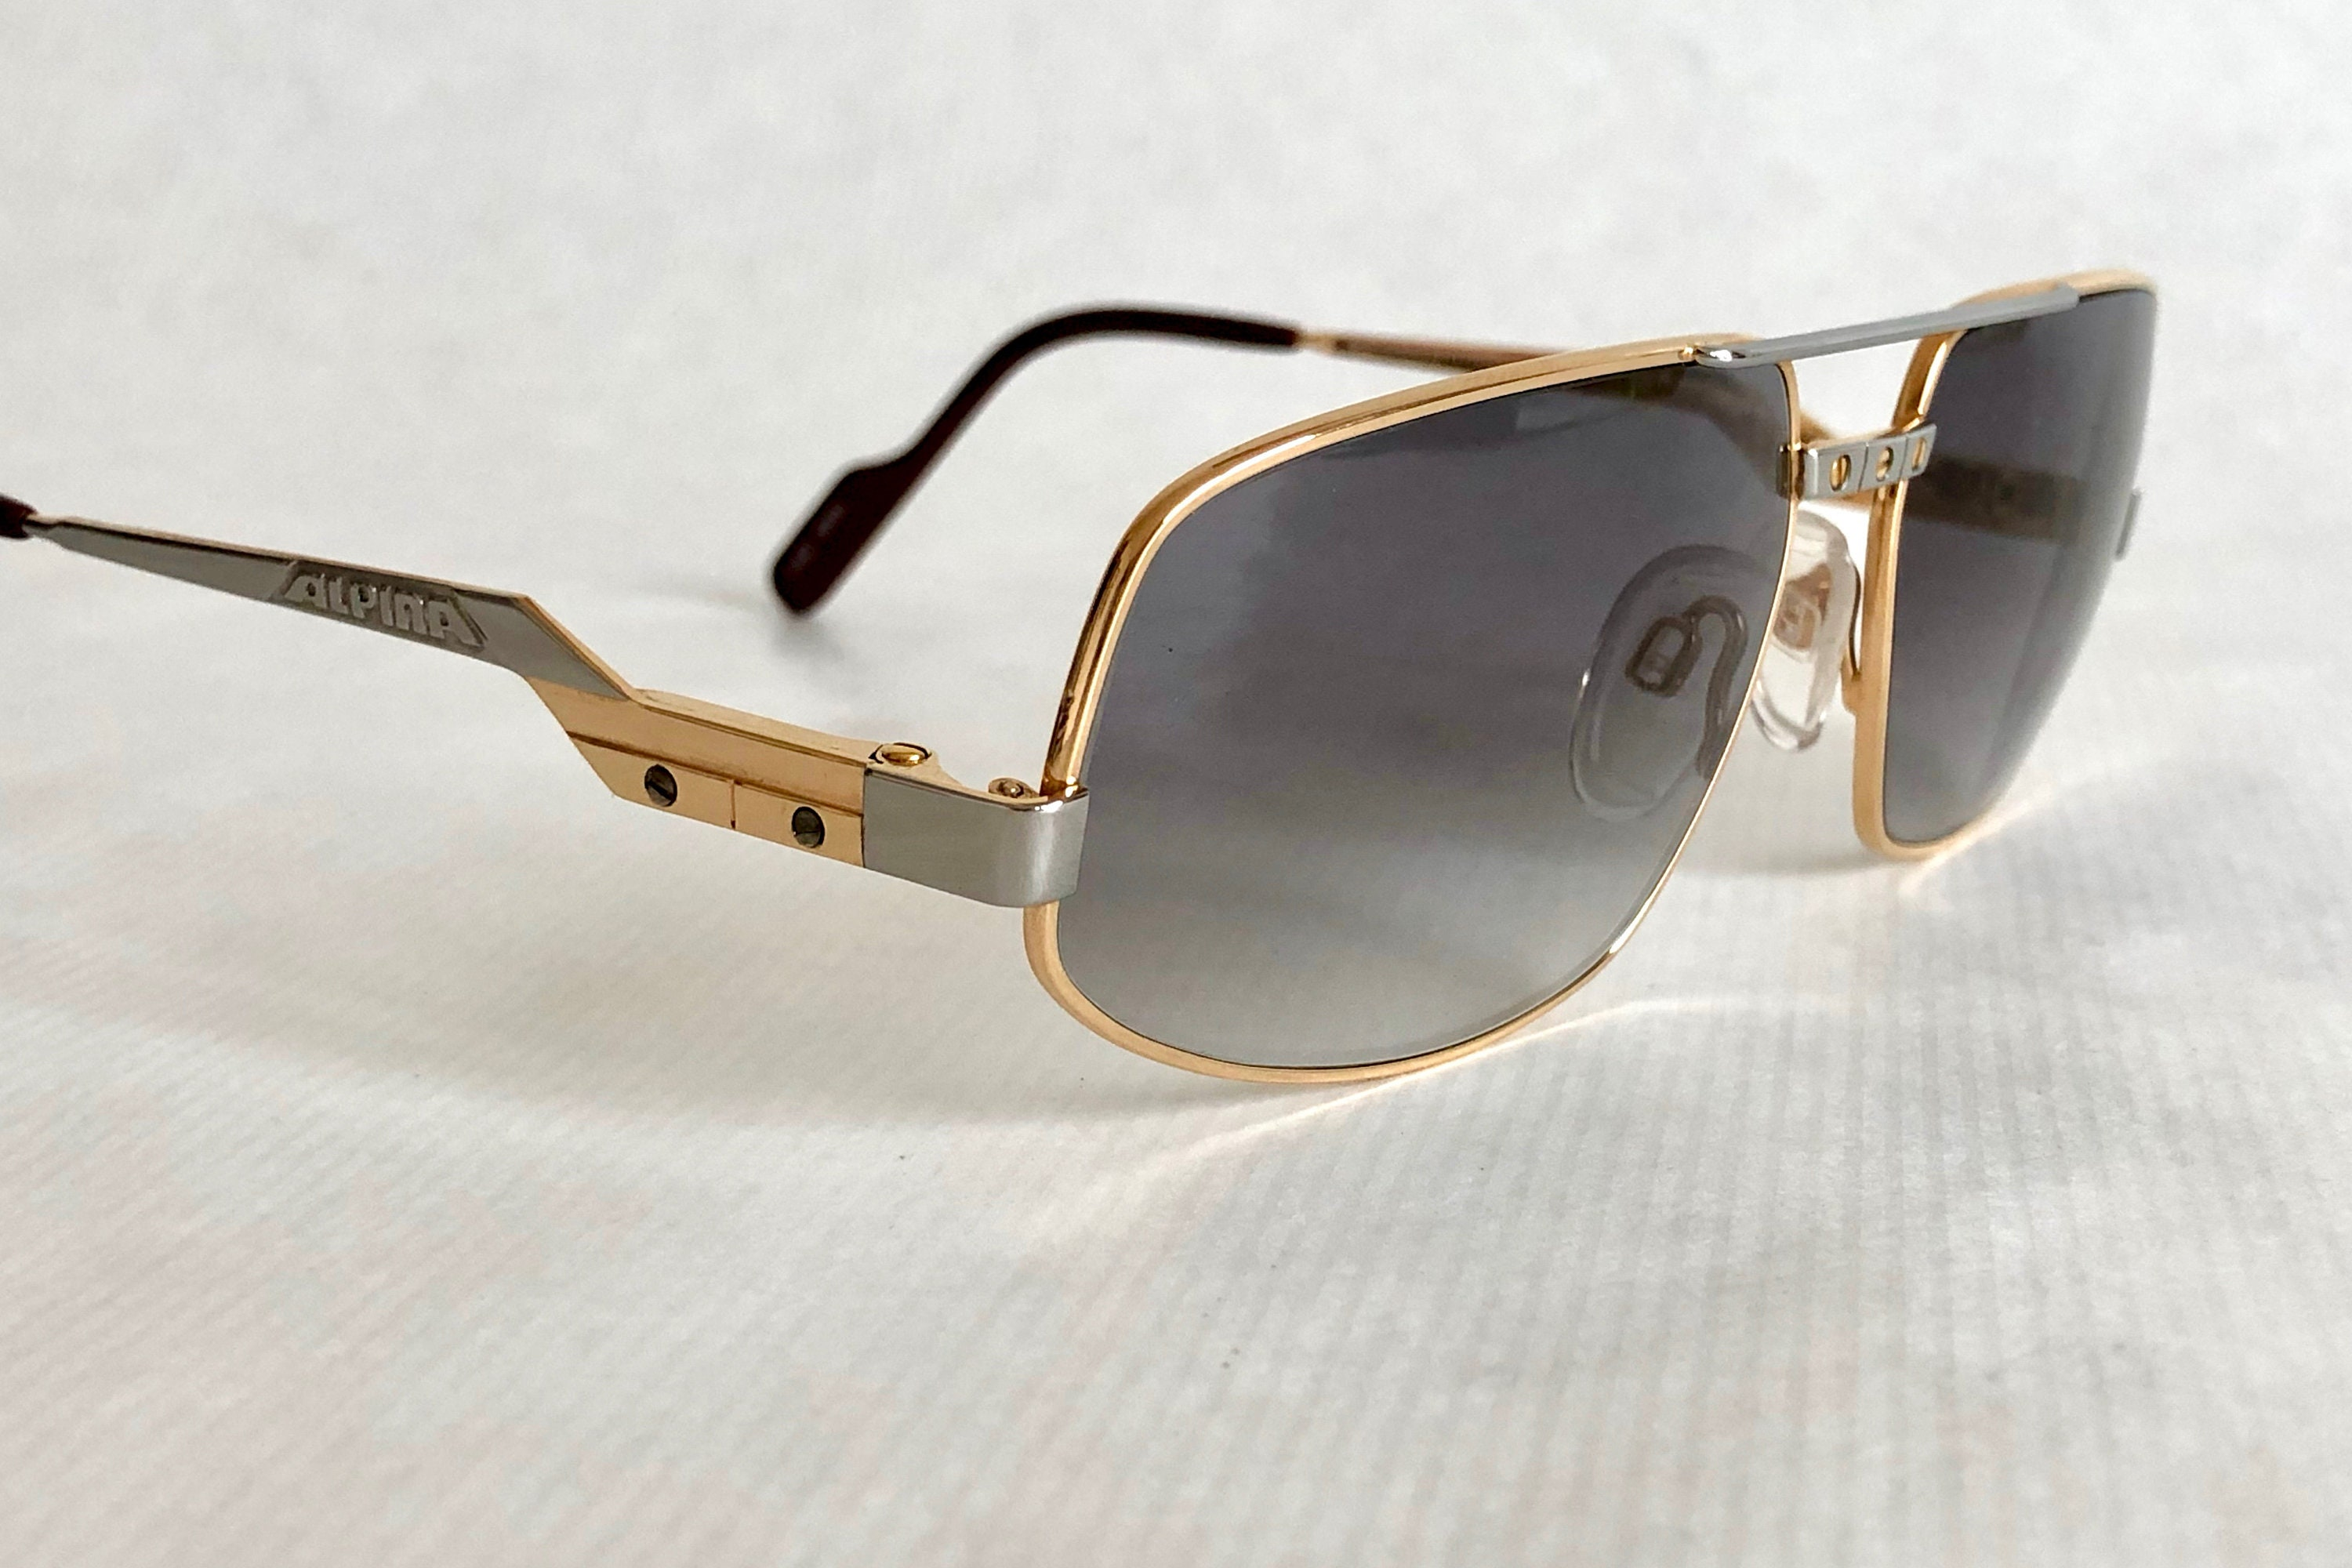 4a2461d49ec4 Alpina FM11 Vintage Sunglasses – New Old Stock – Including Alpina Case –  Made in West Germany